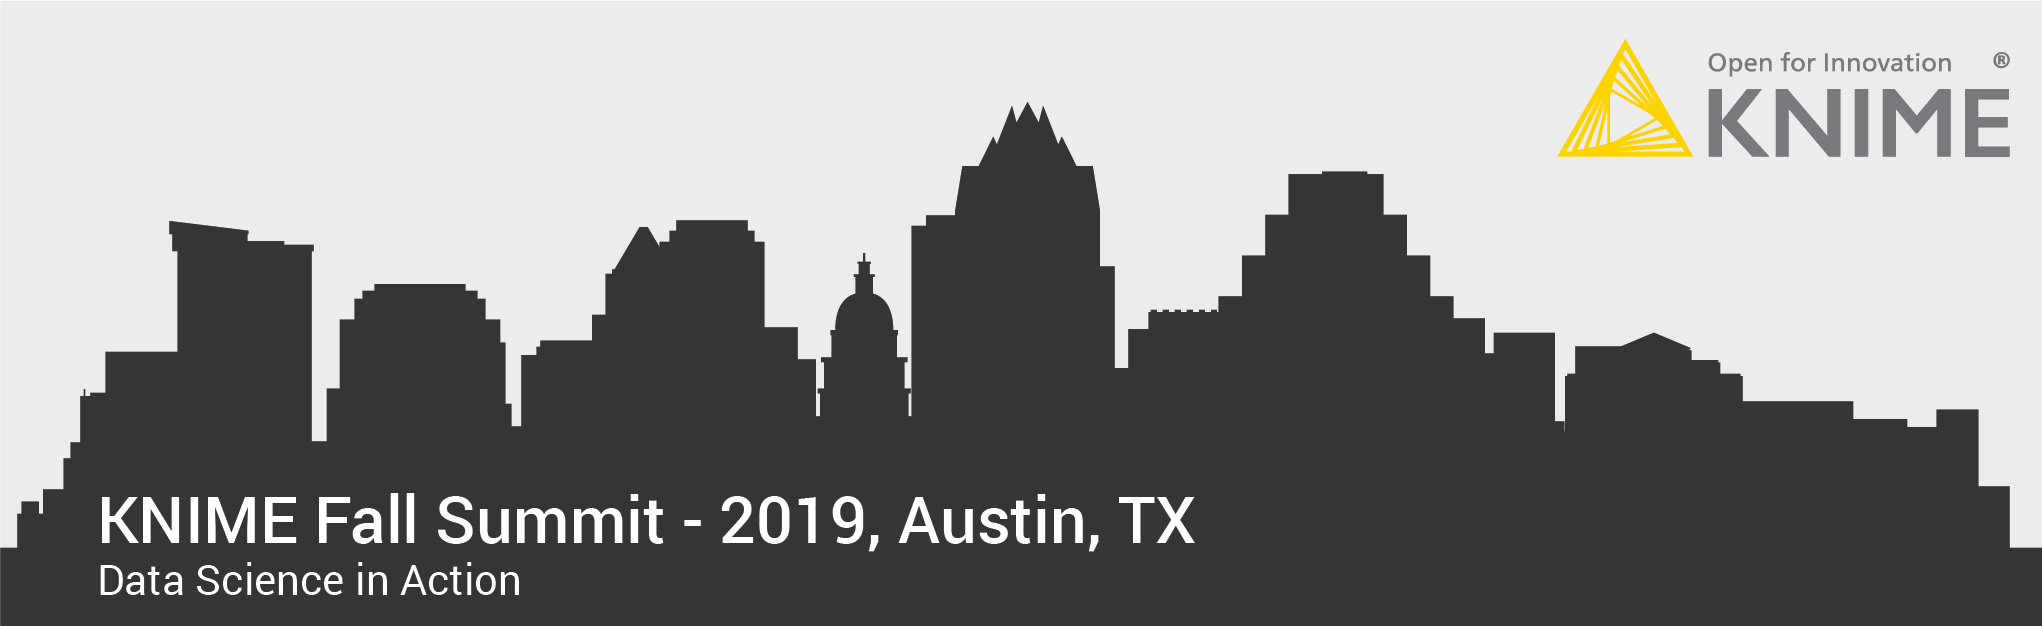 Banner for KNIME Fall Summit 2019 Austin TX